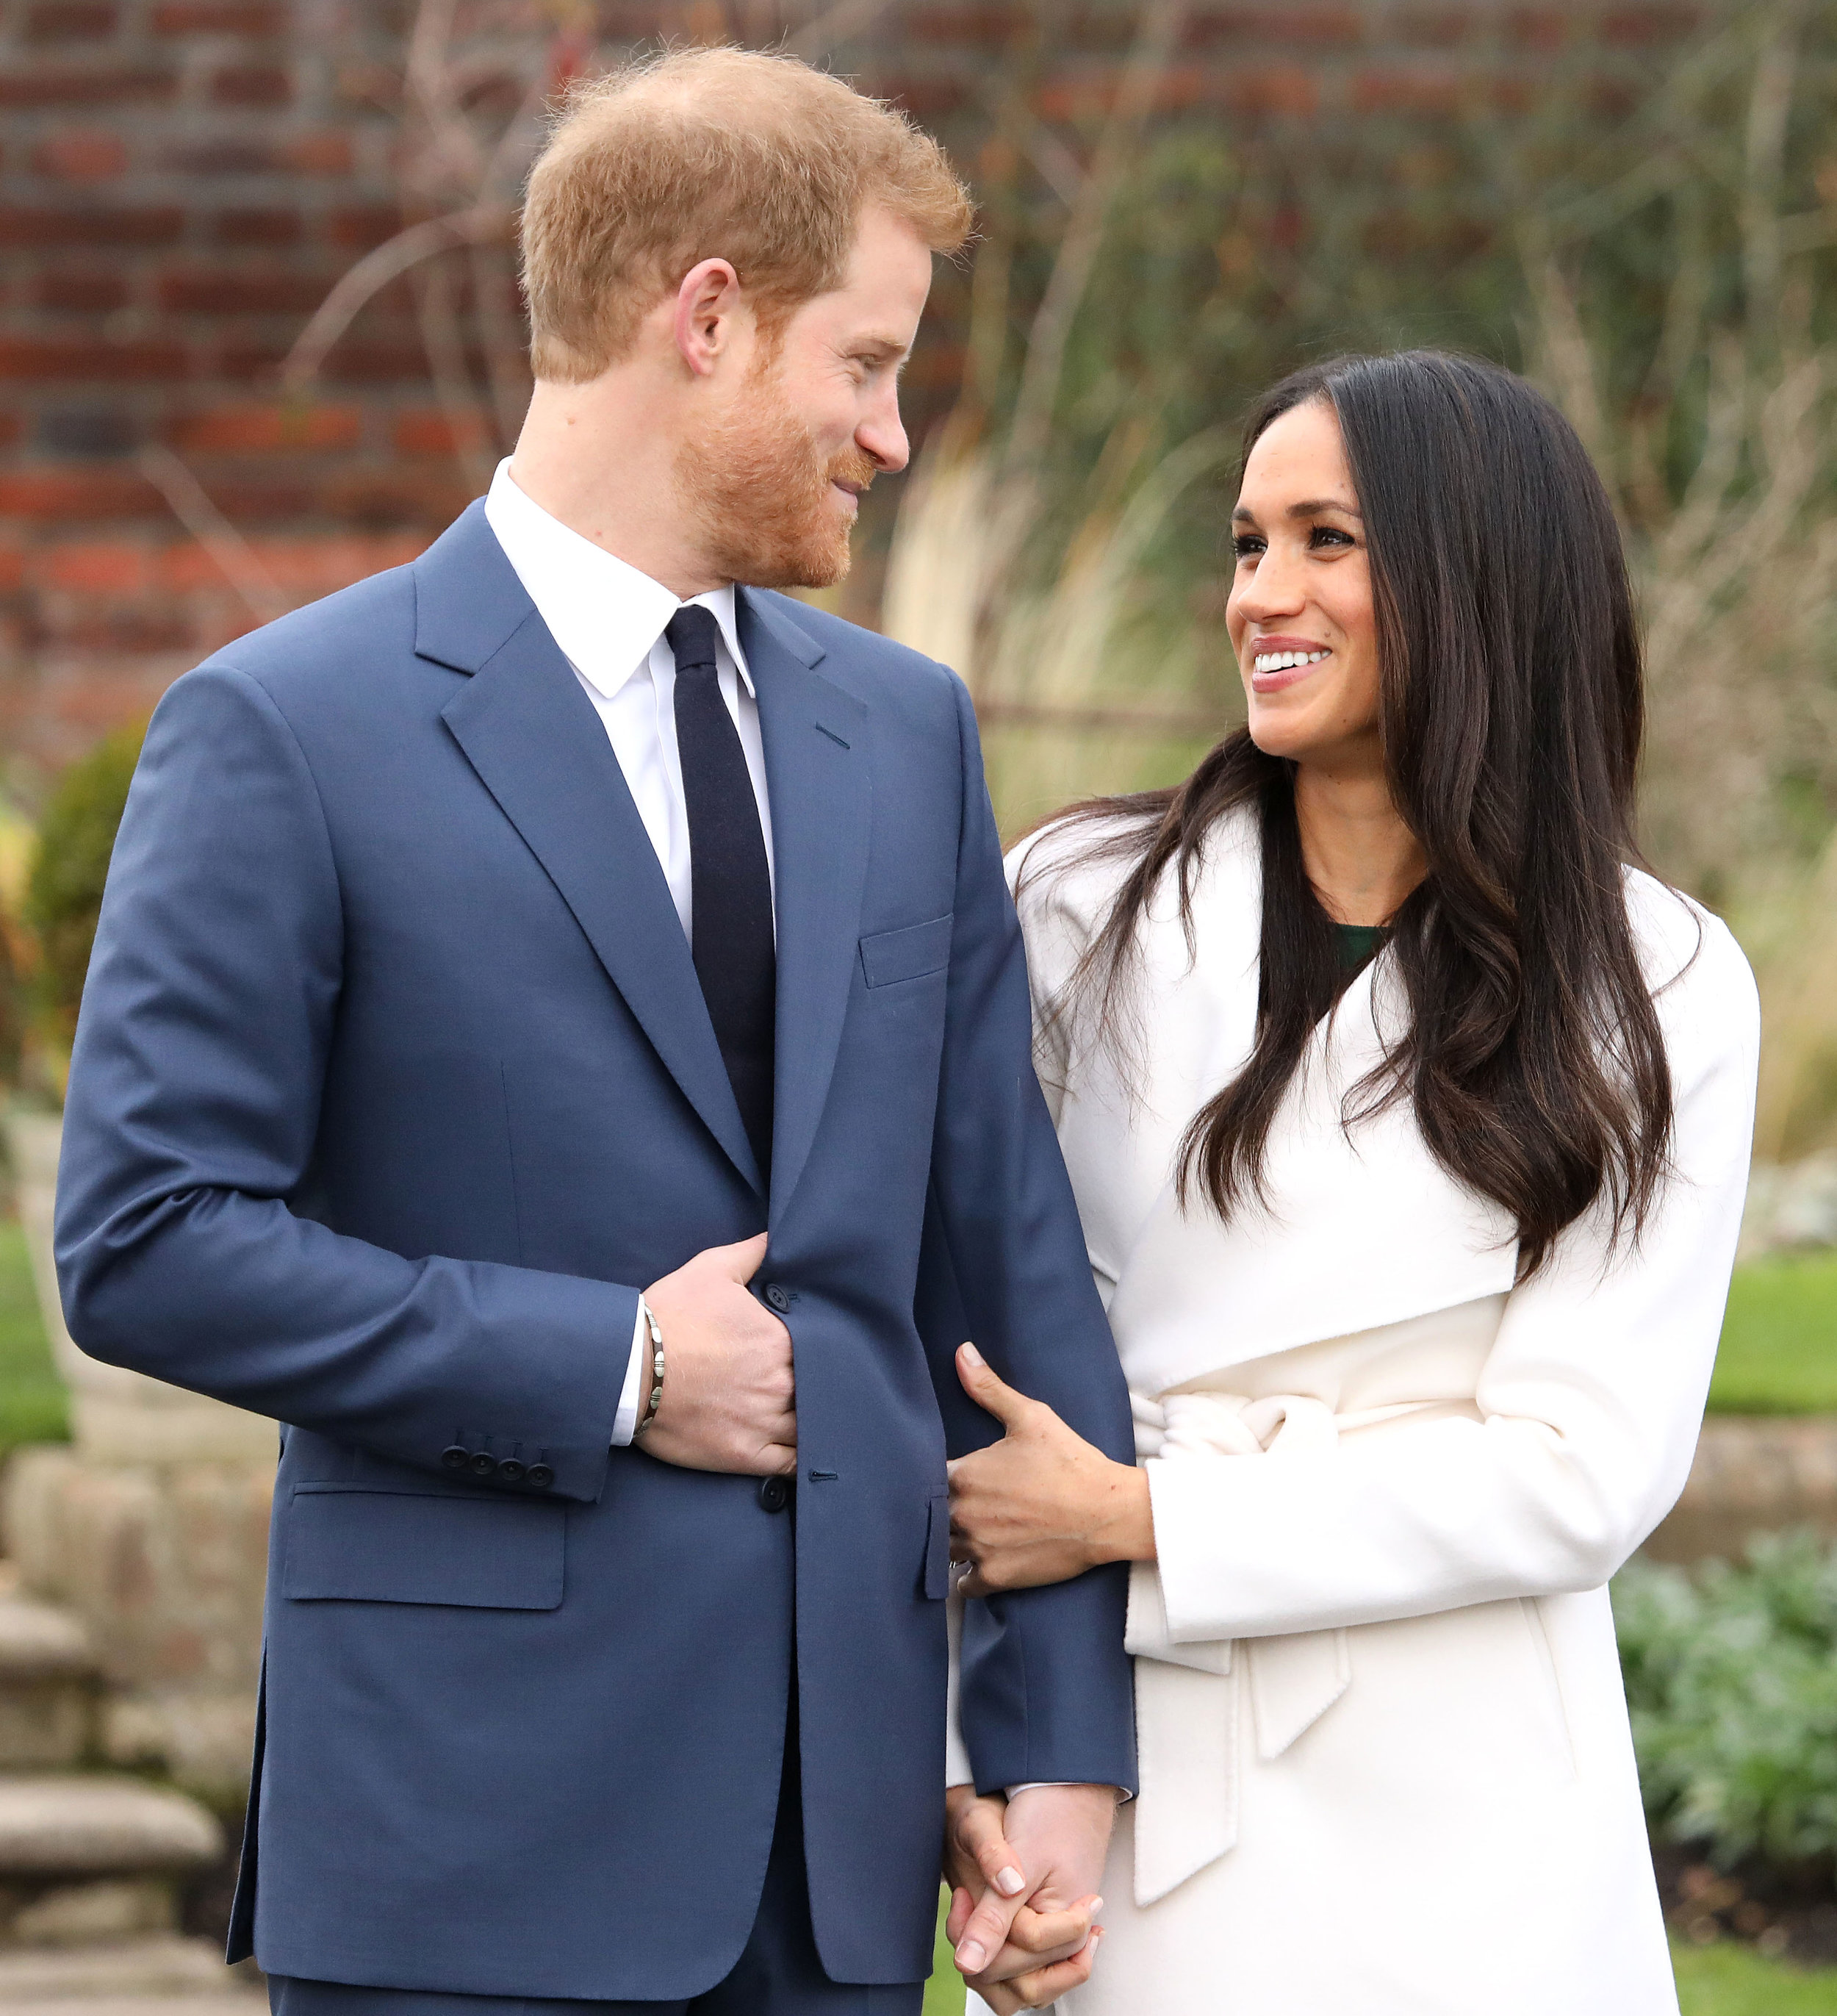 PHT_B5327_prince_harry_engagement_14408.JPG